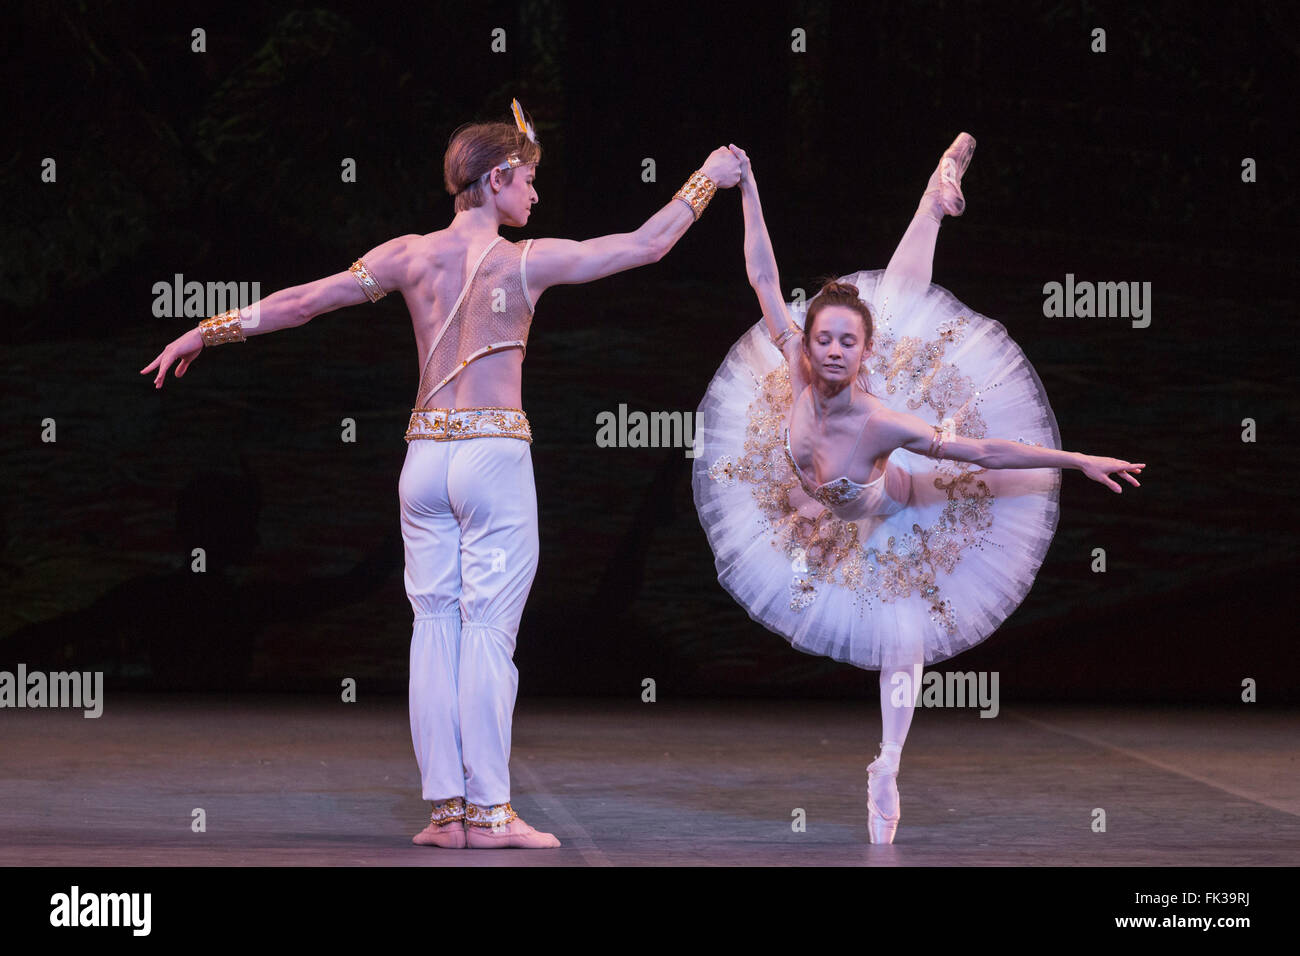 London, UK. 6 March 2016. Le Corsaire performed by Maria Kochetkova (San Francisco Ballet) and Daniil Simkin (Americal - Stock Image